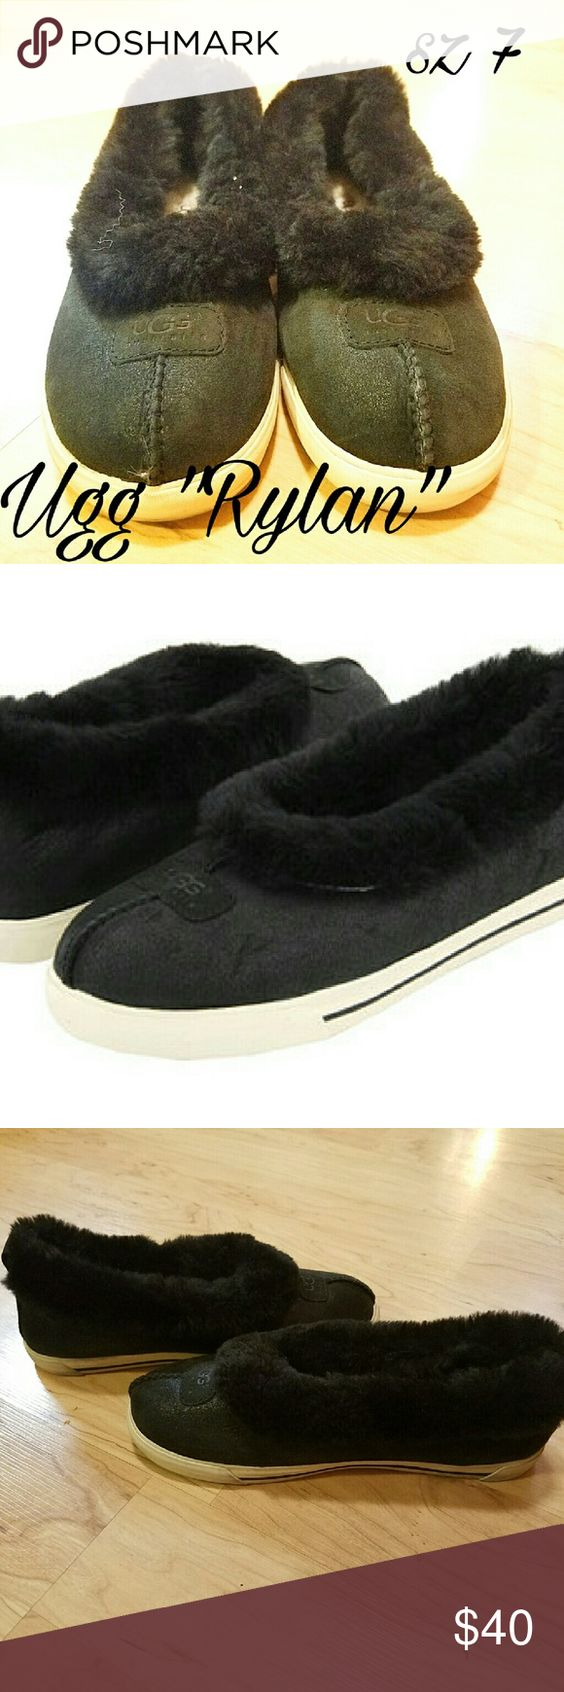 Ugg Rylan slip on shoes sz 7 Brand: Ugg Style: Rylan Size: Women's 7  Super comfy slipper upper with outdoor soles. Shearling and suede. Light signs of normal wear, tons of life left! UGG Shoes Flats & Loafers